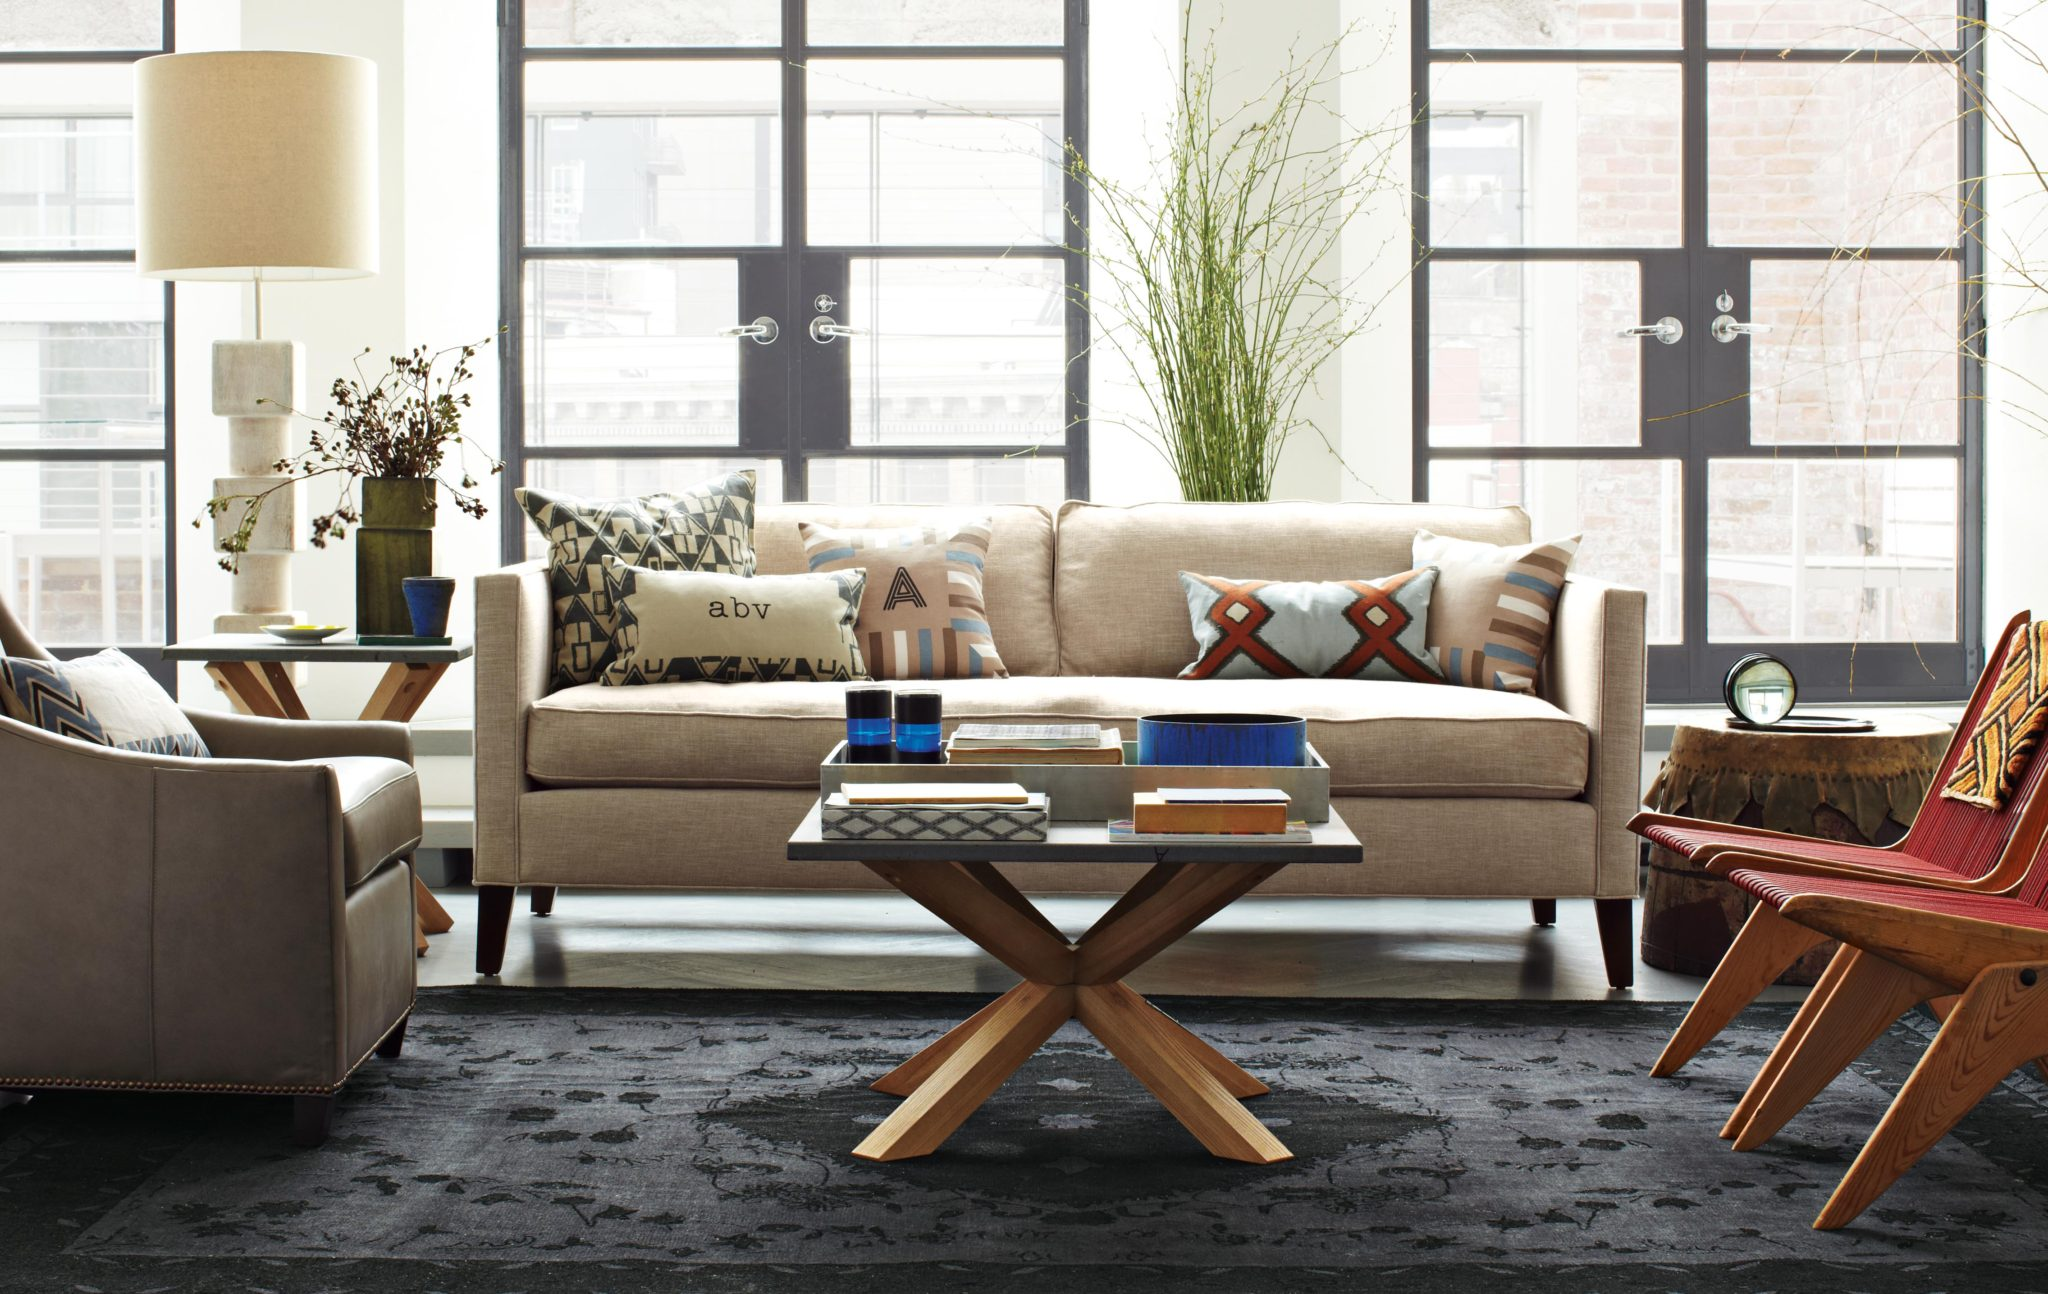 west elm and pottery barn to open in australia the interiors addict rh theinteriorsaddict com west elm interior designer salary west elm interior design discount